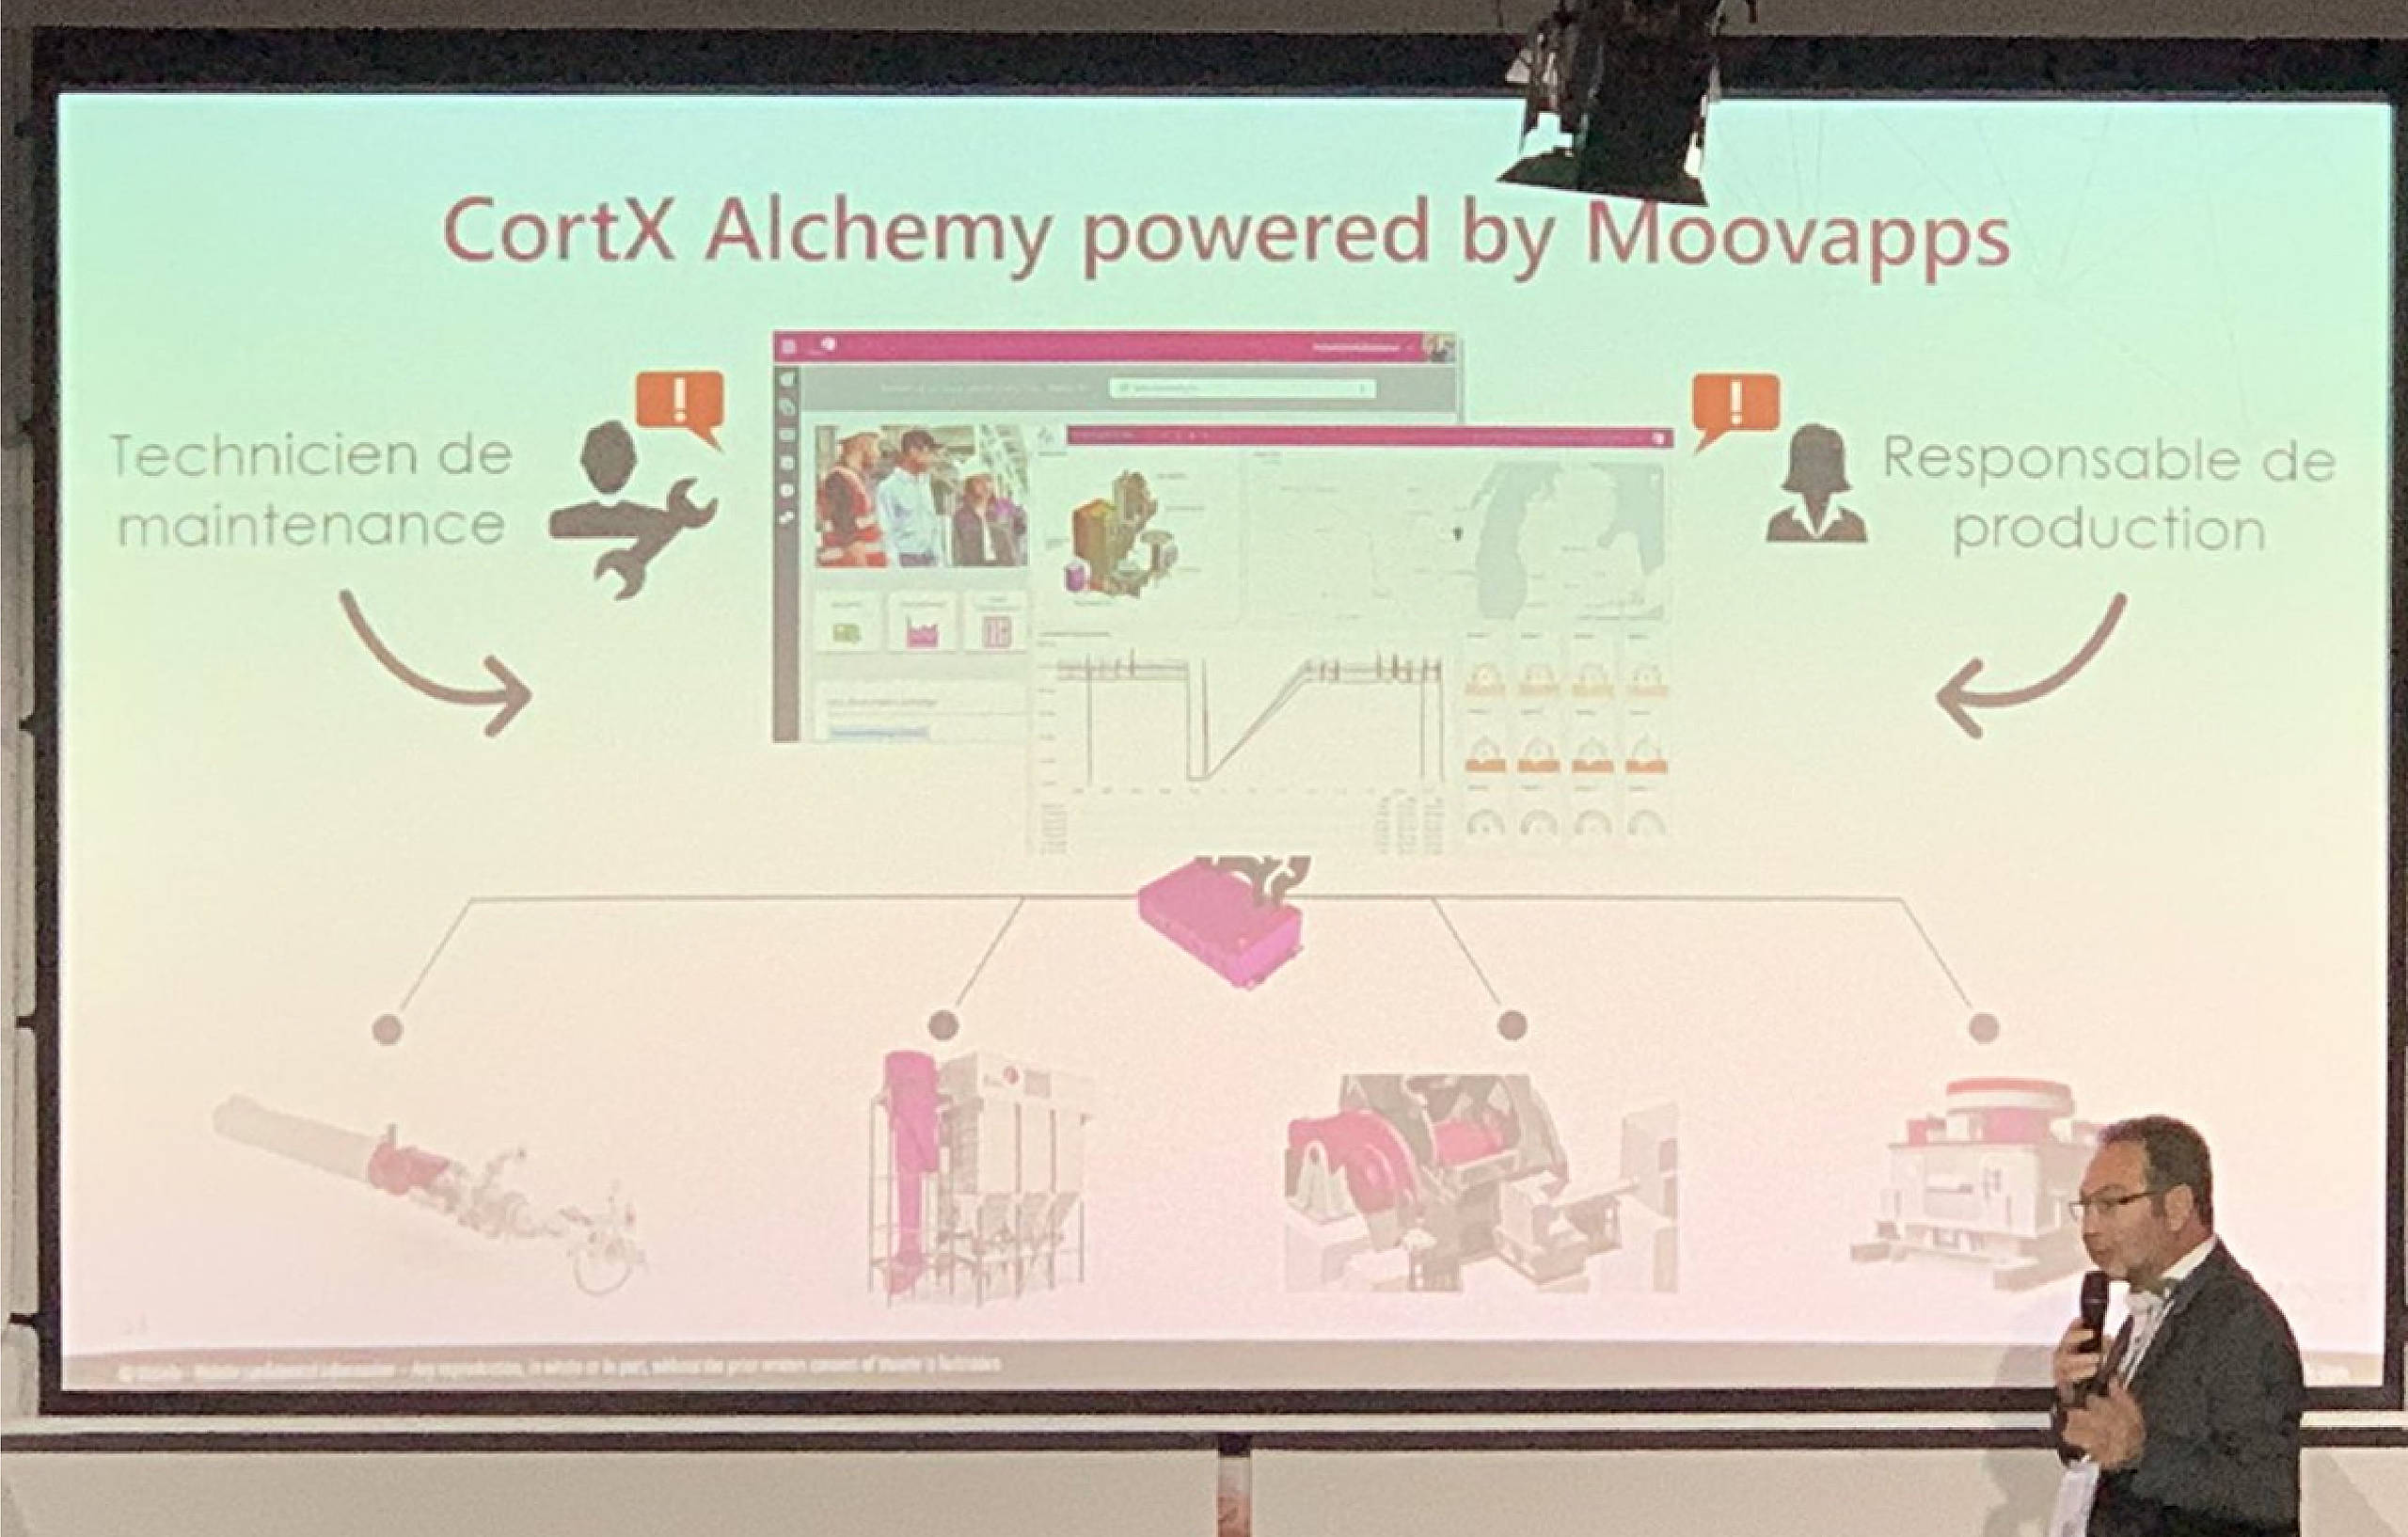 CortX Alchemy powered by Moovaps-FIVES